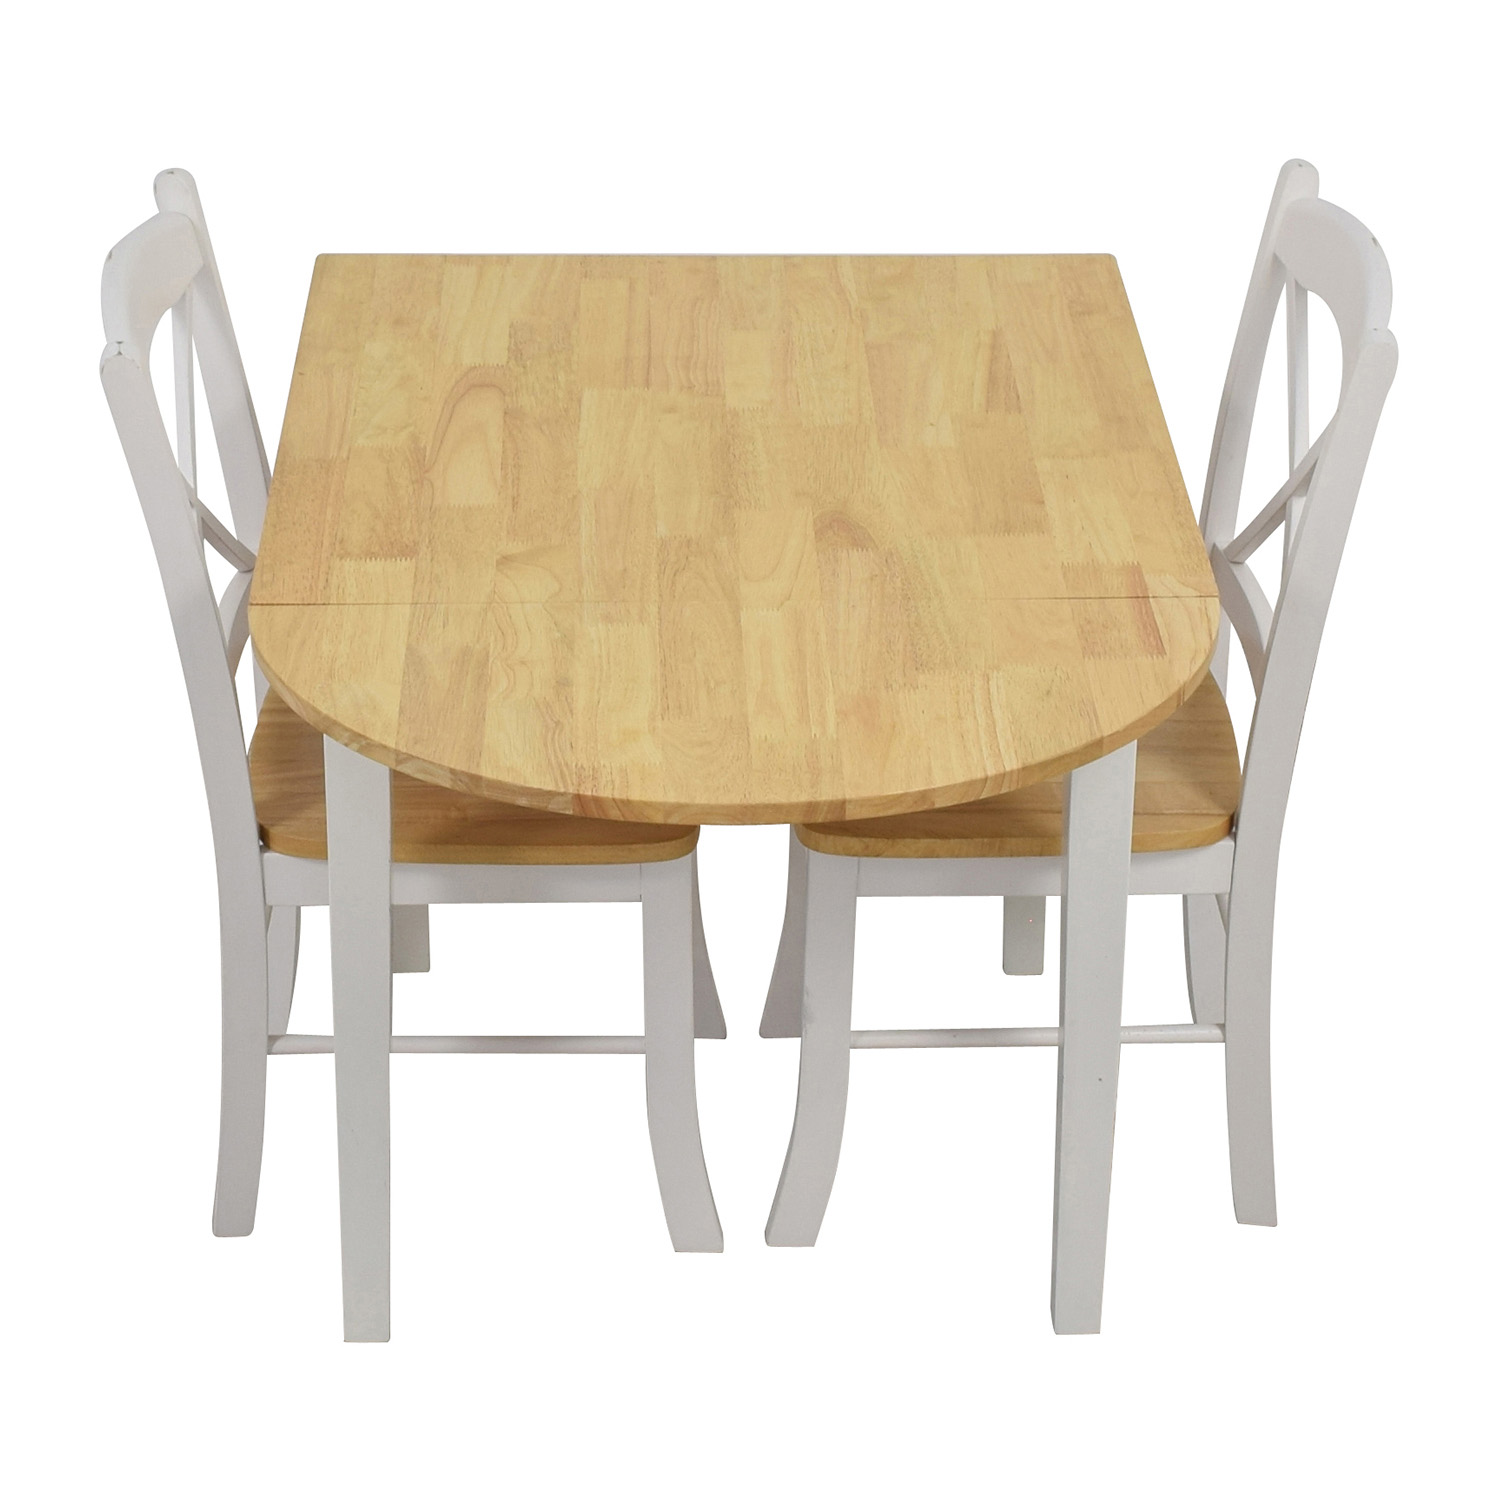 ... Simple Living Simple Living Country Cottage 3 Piece Dining Set Nyc ...